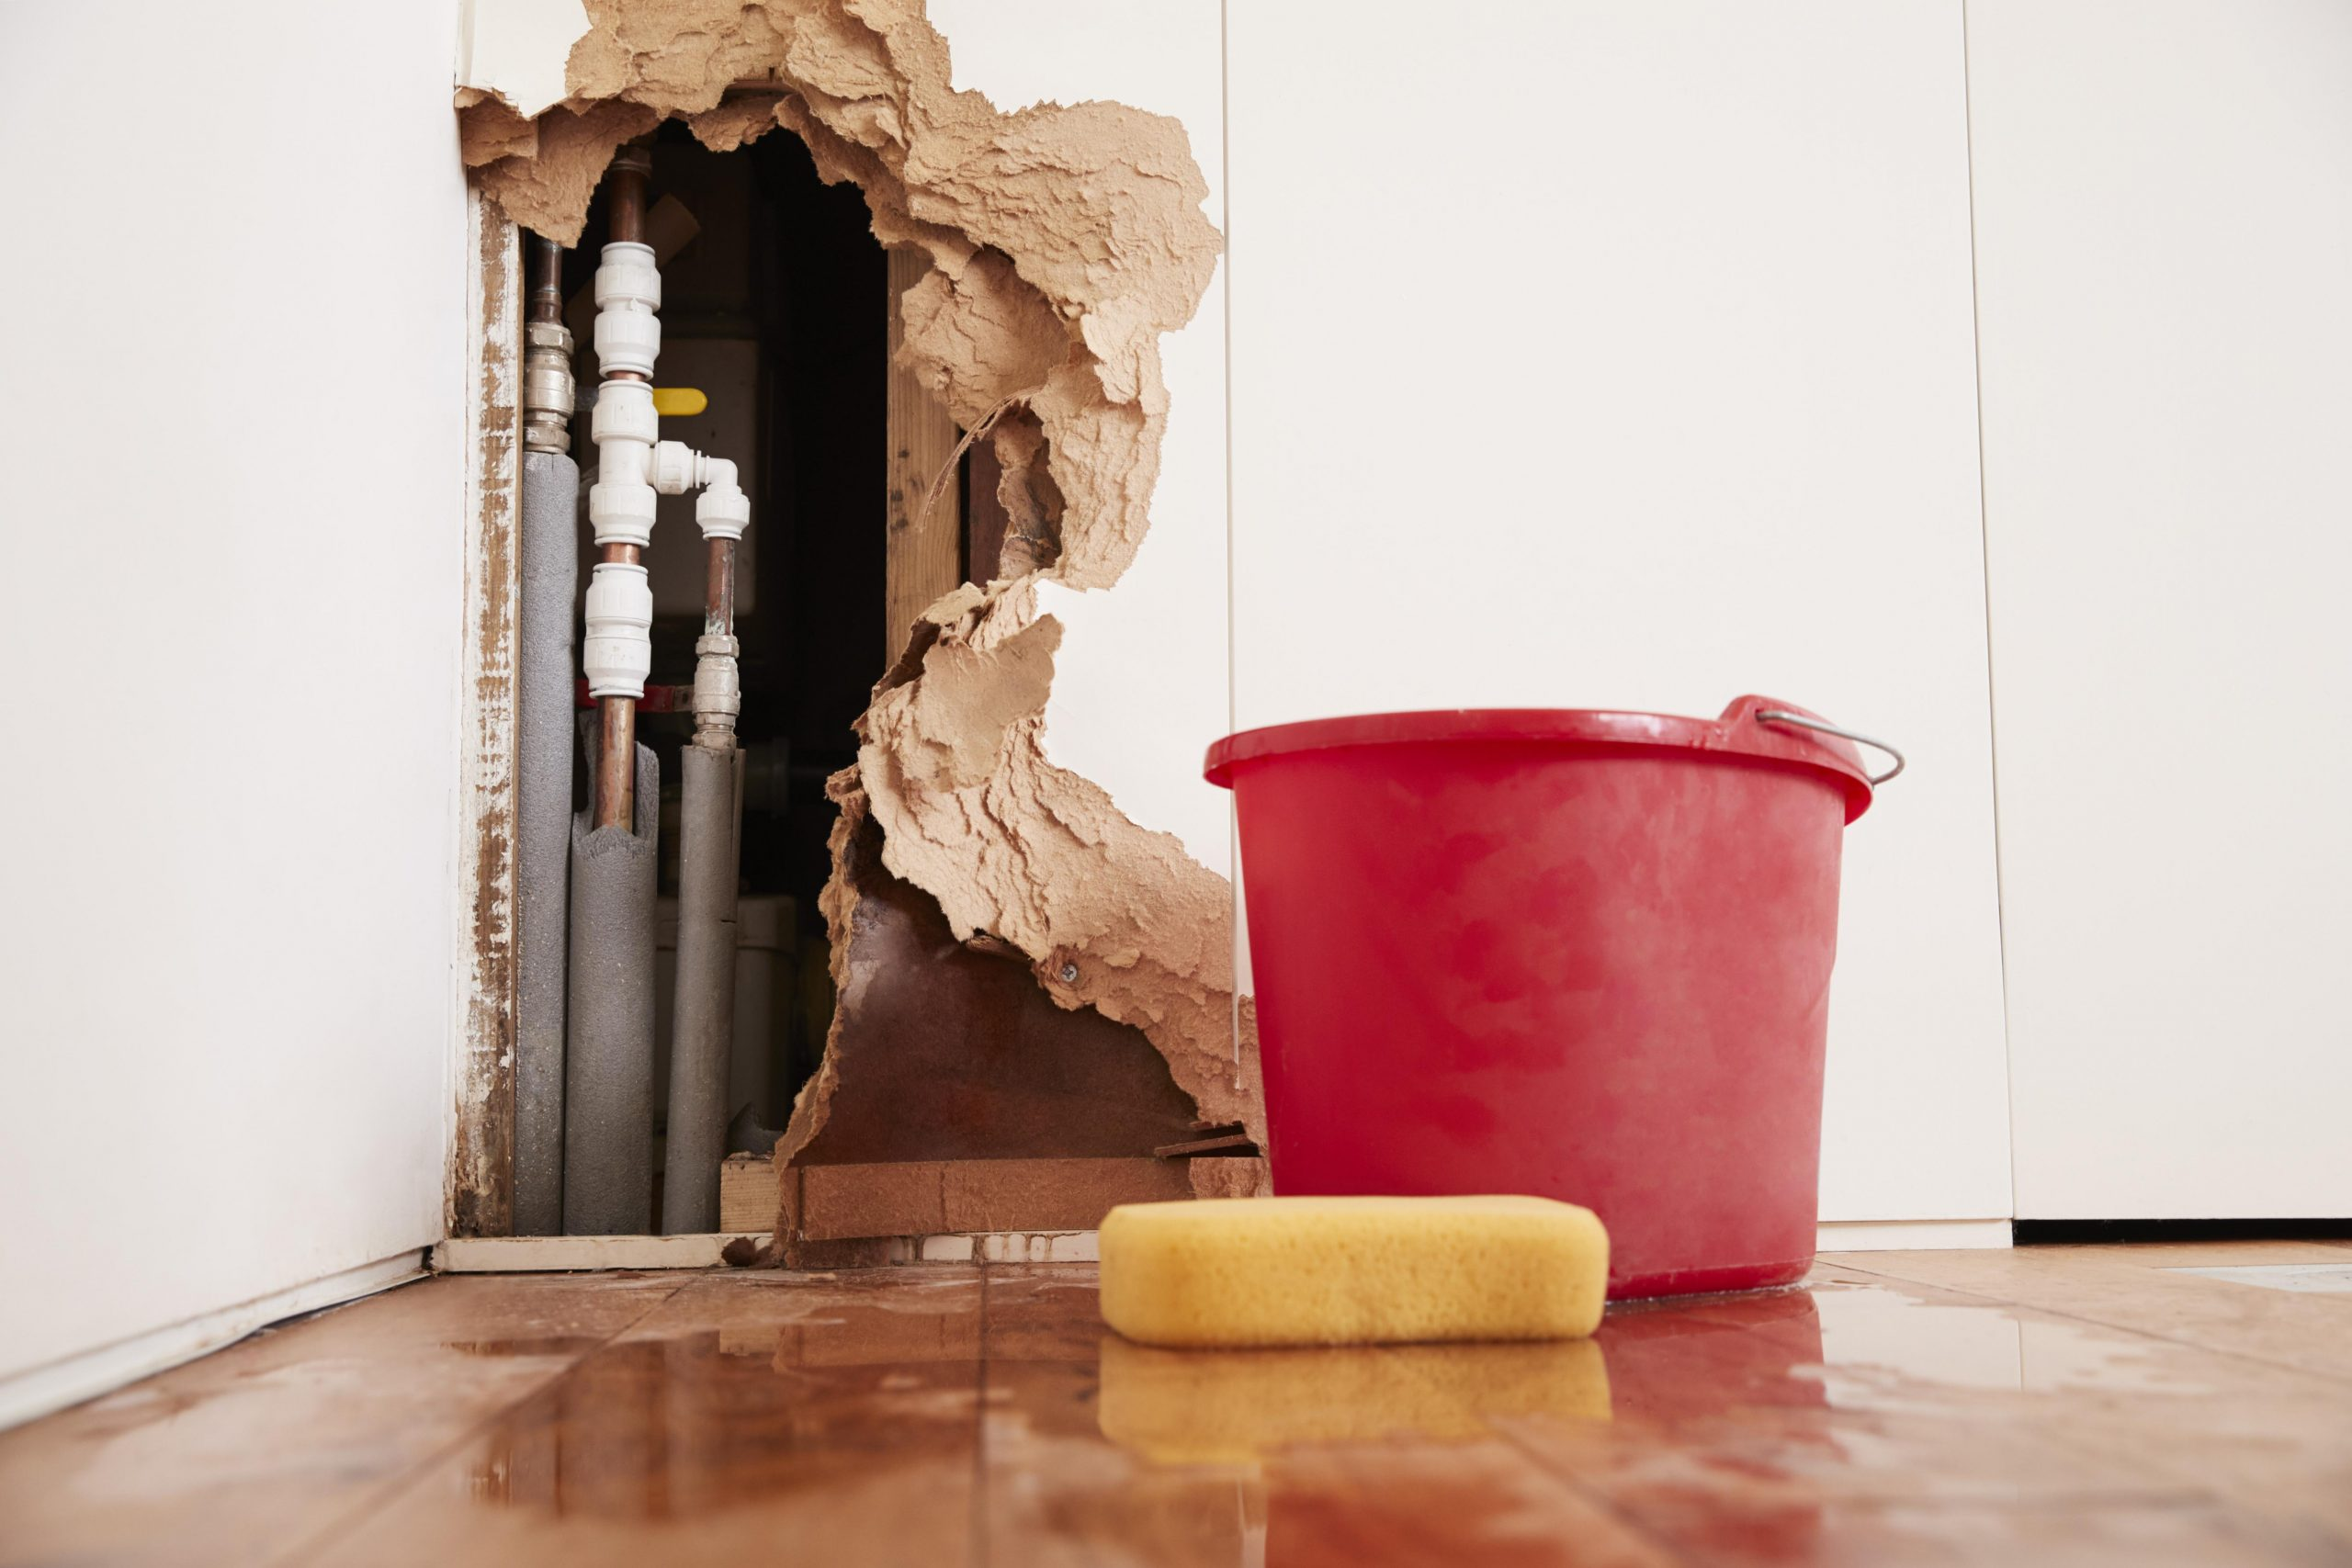 Learn More About Water Damage Restoration JASD Inc scaled